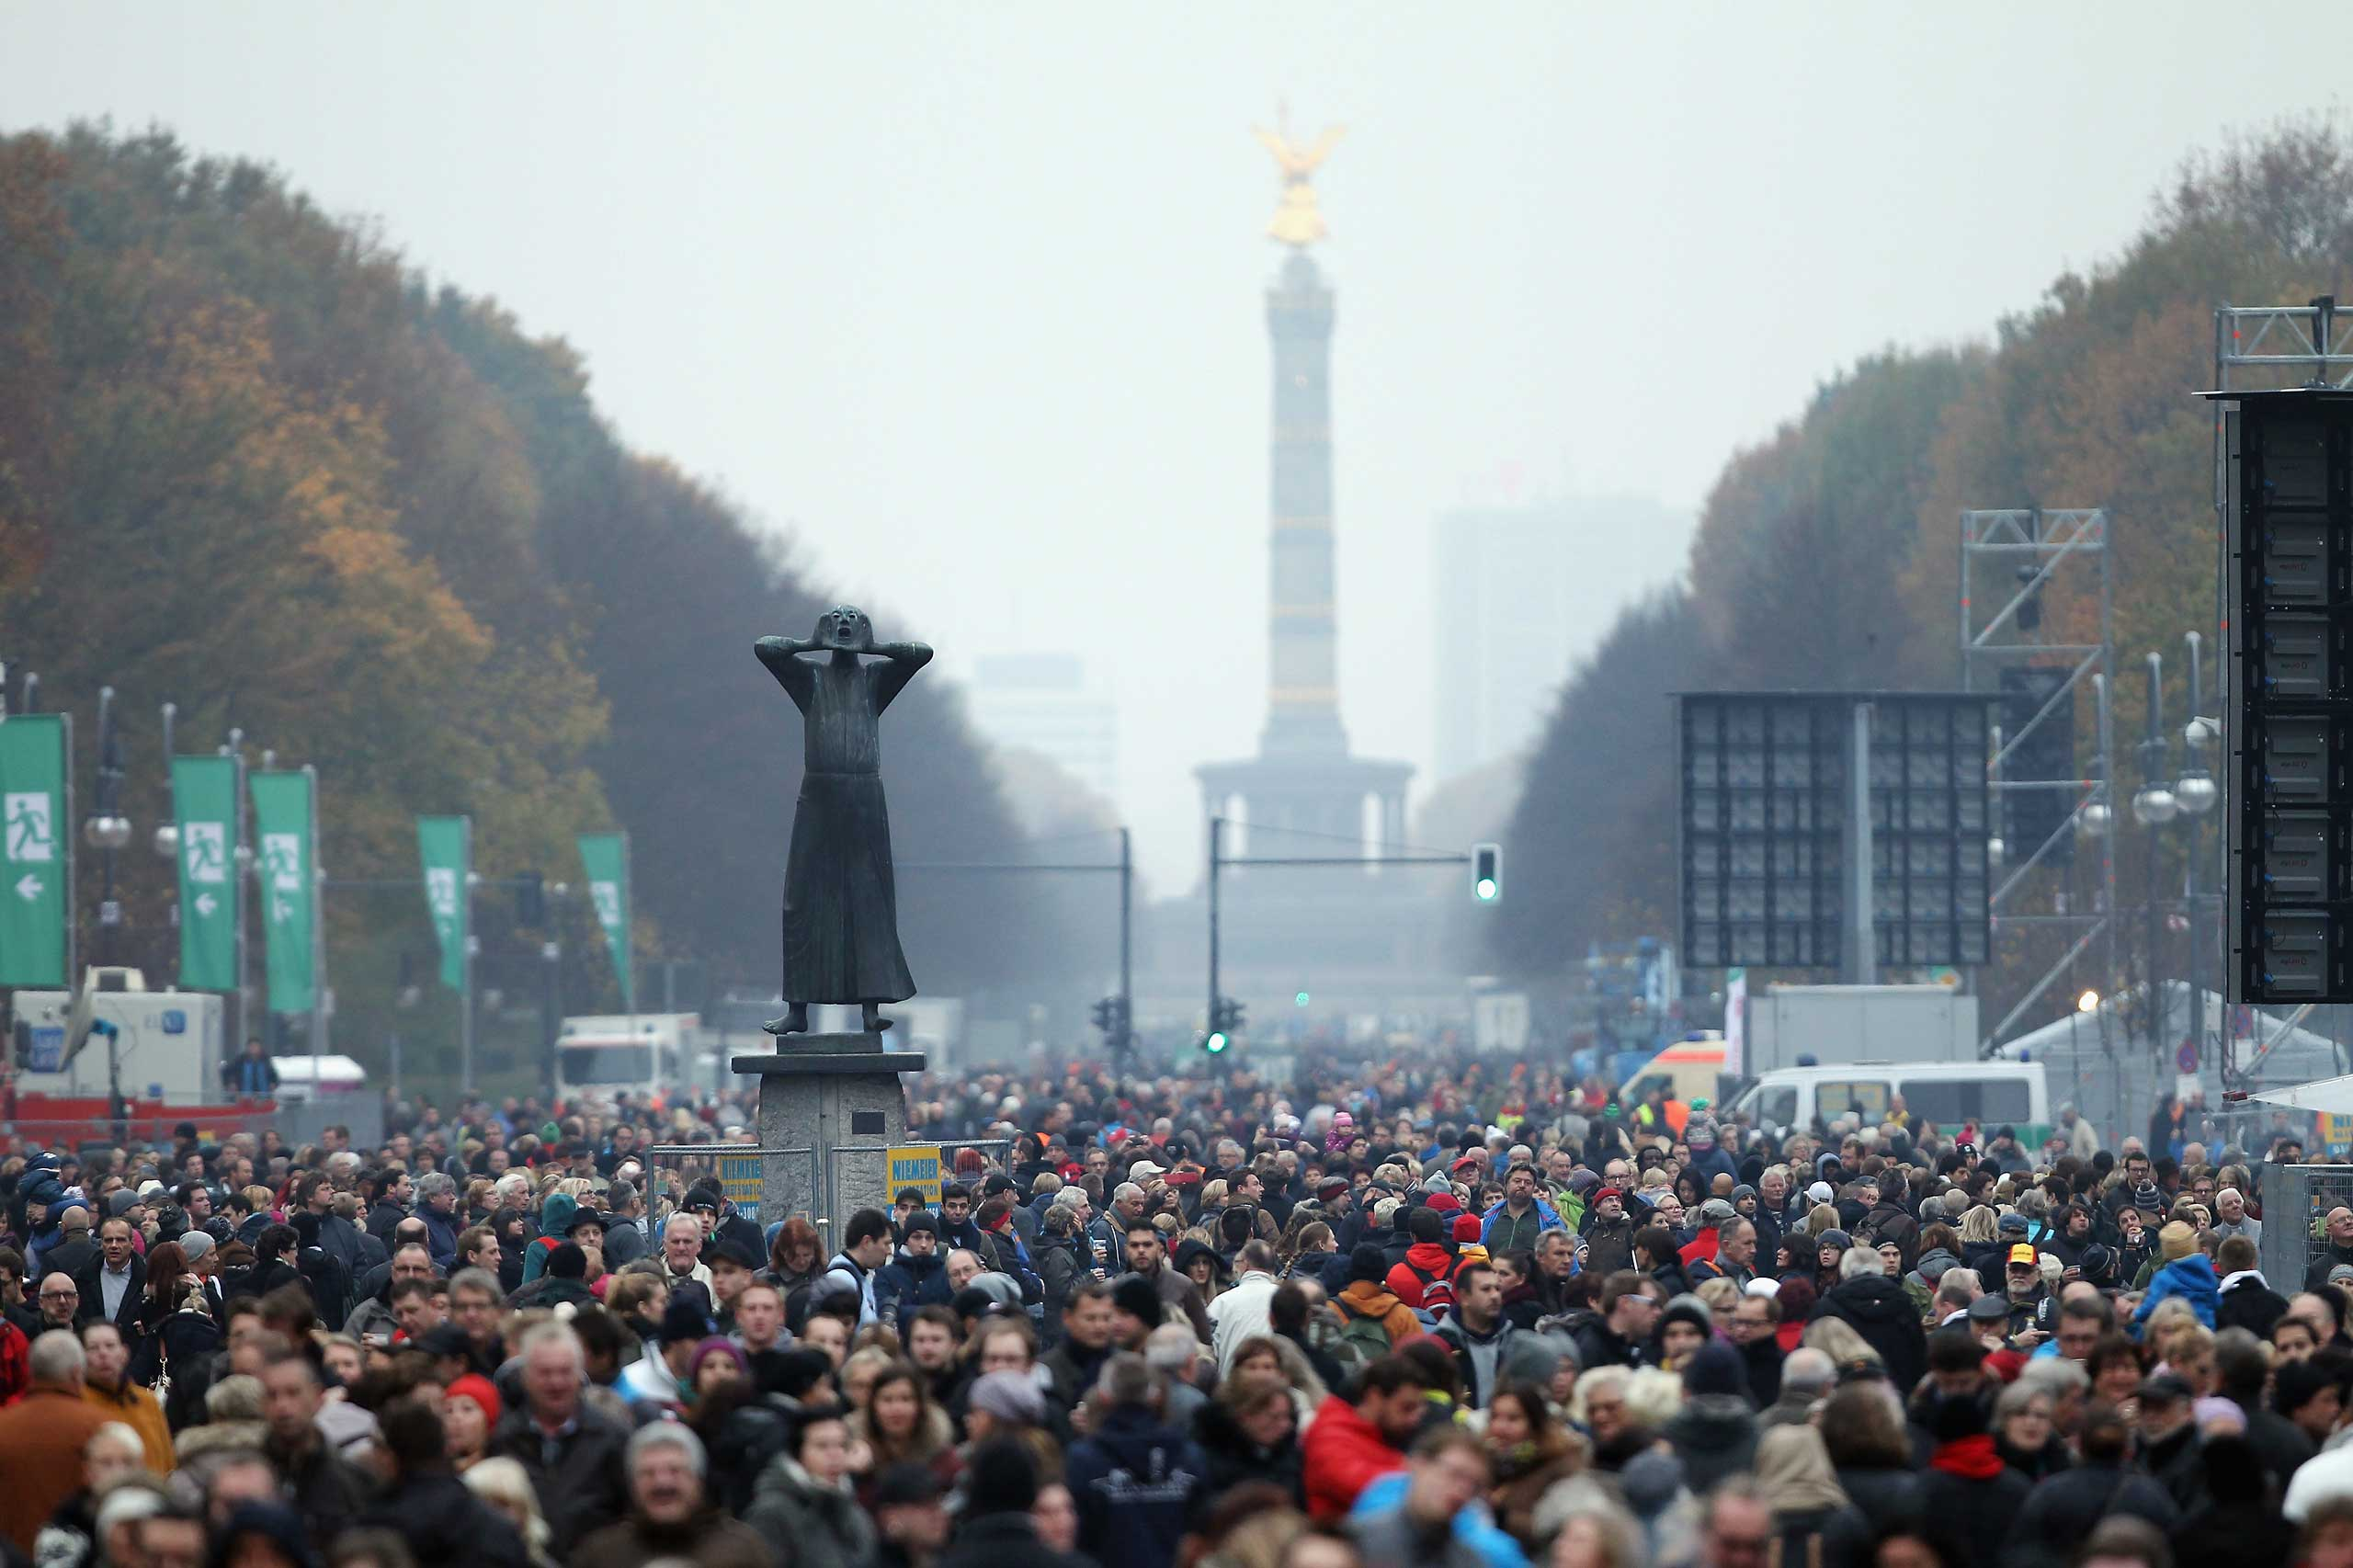 Crowds gather on the 25th anniversary of the fall of the Berlin Wall on November 9, 2014 in Berlin, Germany.